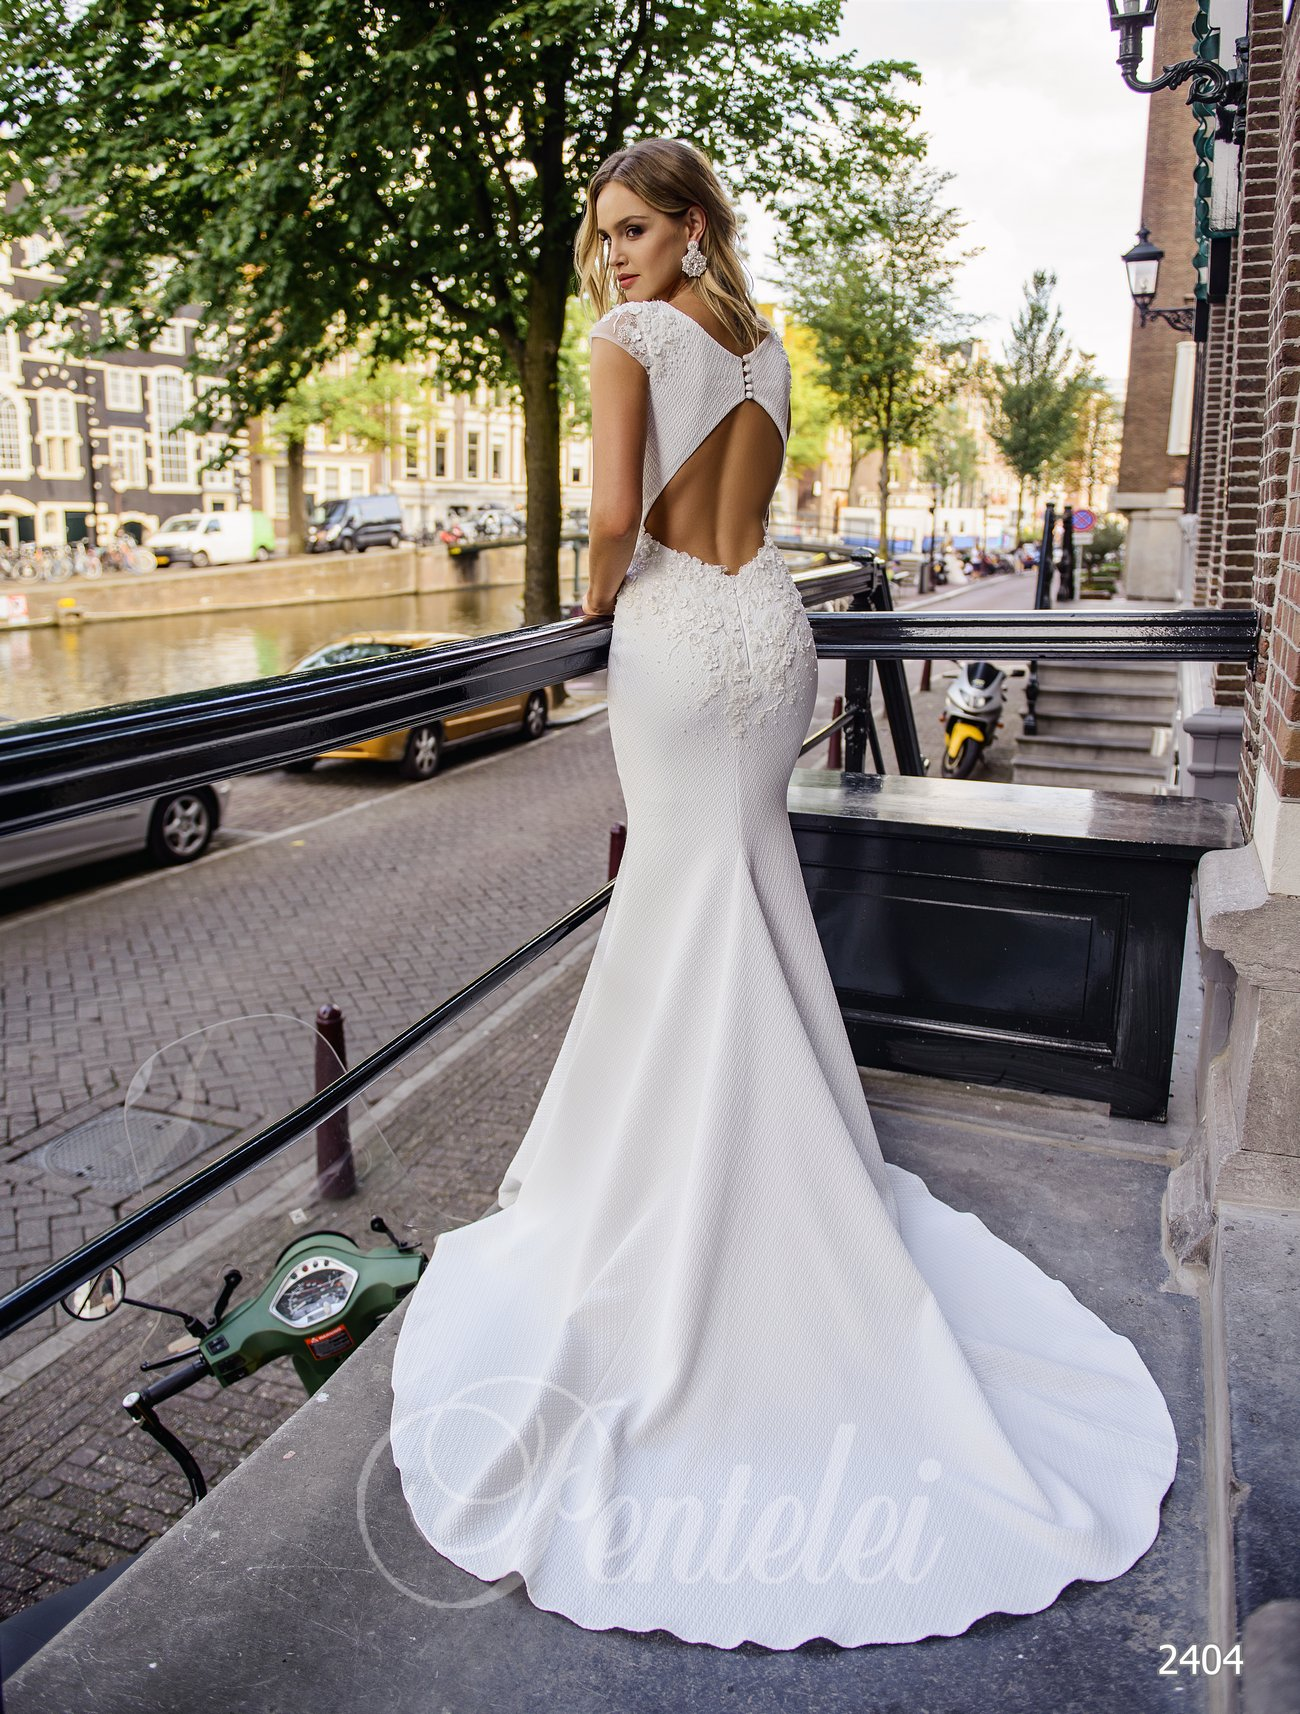 Elegant wedding dress mermaid | Buy wedding dresses wholesale from Pentelei